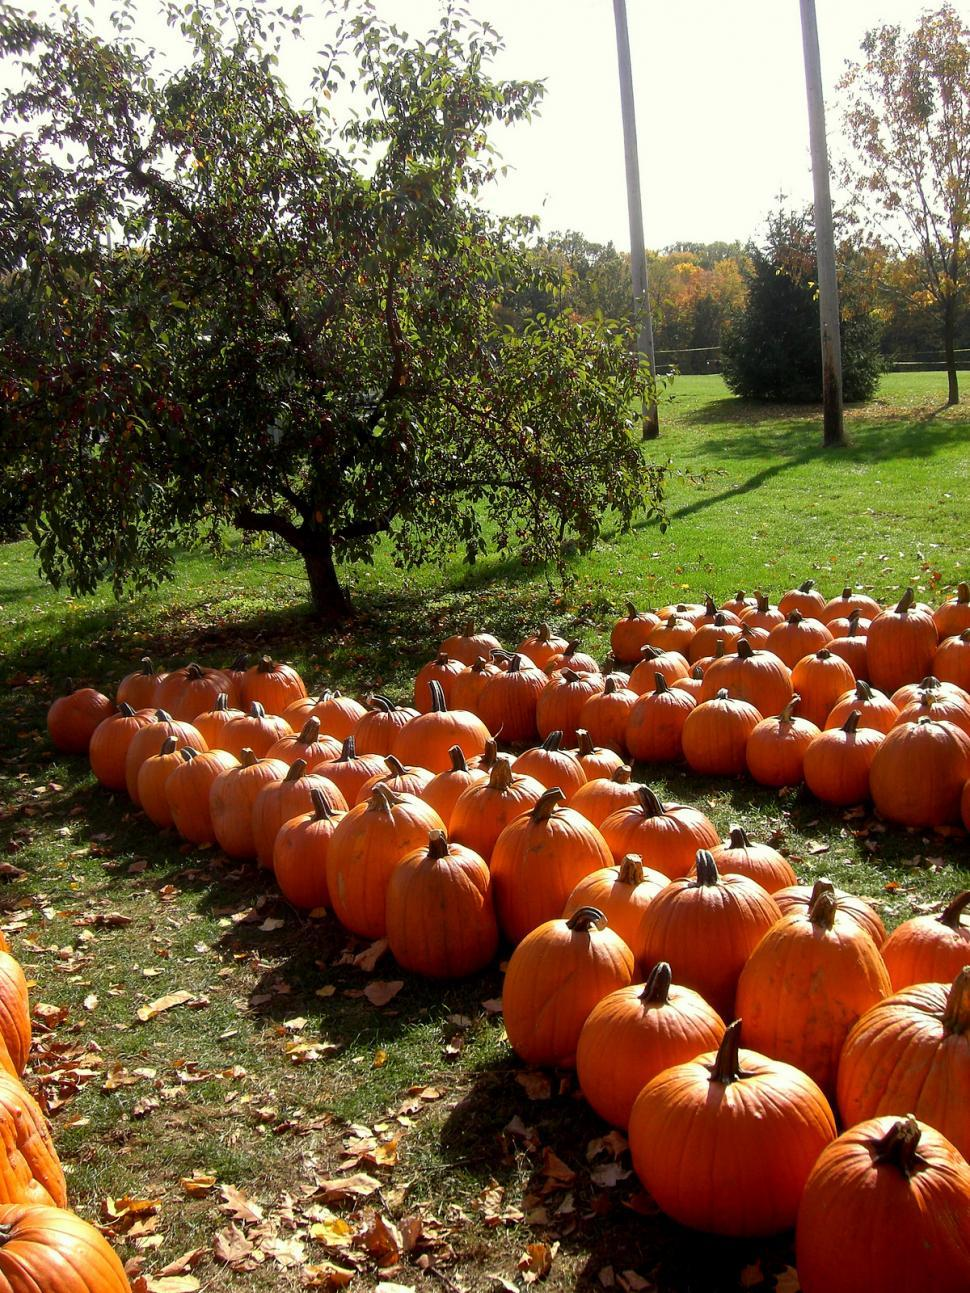 Download Free Stock Photo of Fall - Pumpkin Patch